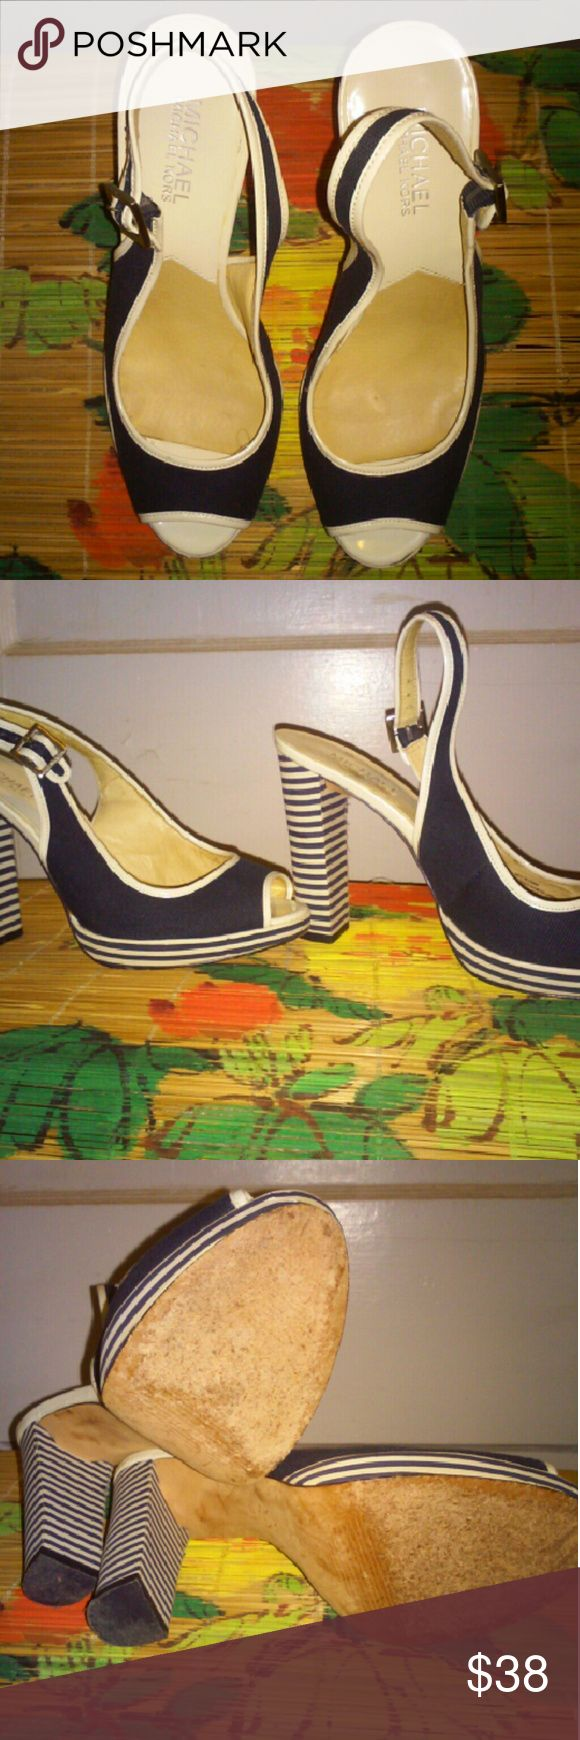 "Michael Kors striped heels sandals Navy white tectile/leather, very comfortable. The heel is appx. 4.5"". Leather outsole. Looks and feels like new. Please look at pictures. Michael Kors Shoes Sandals"